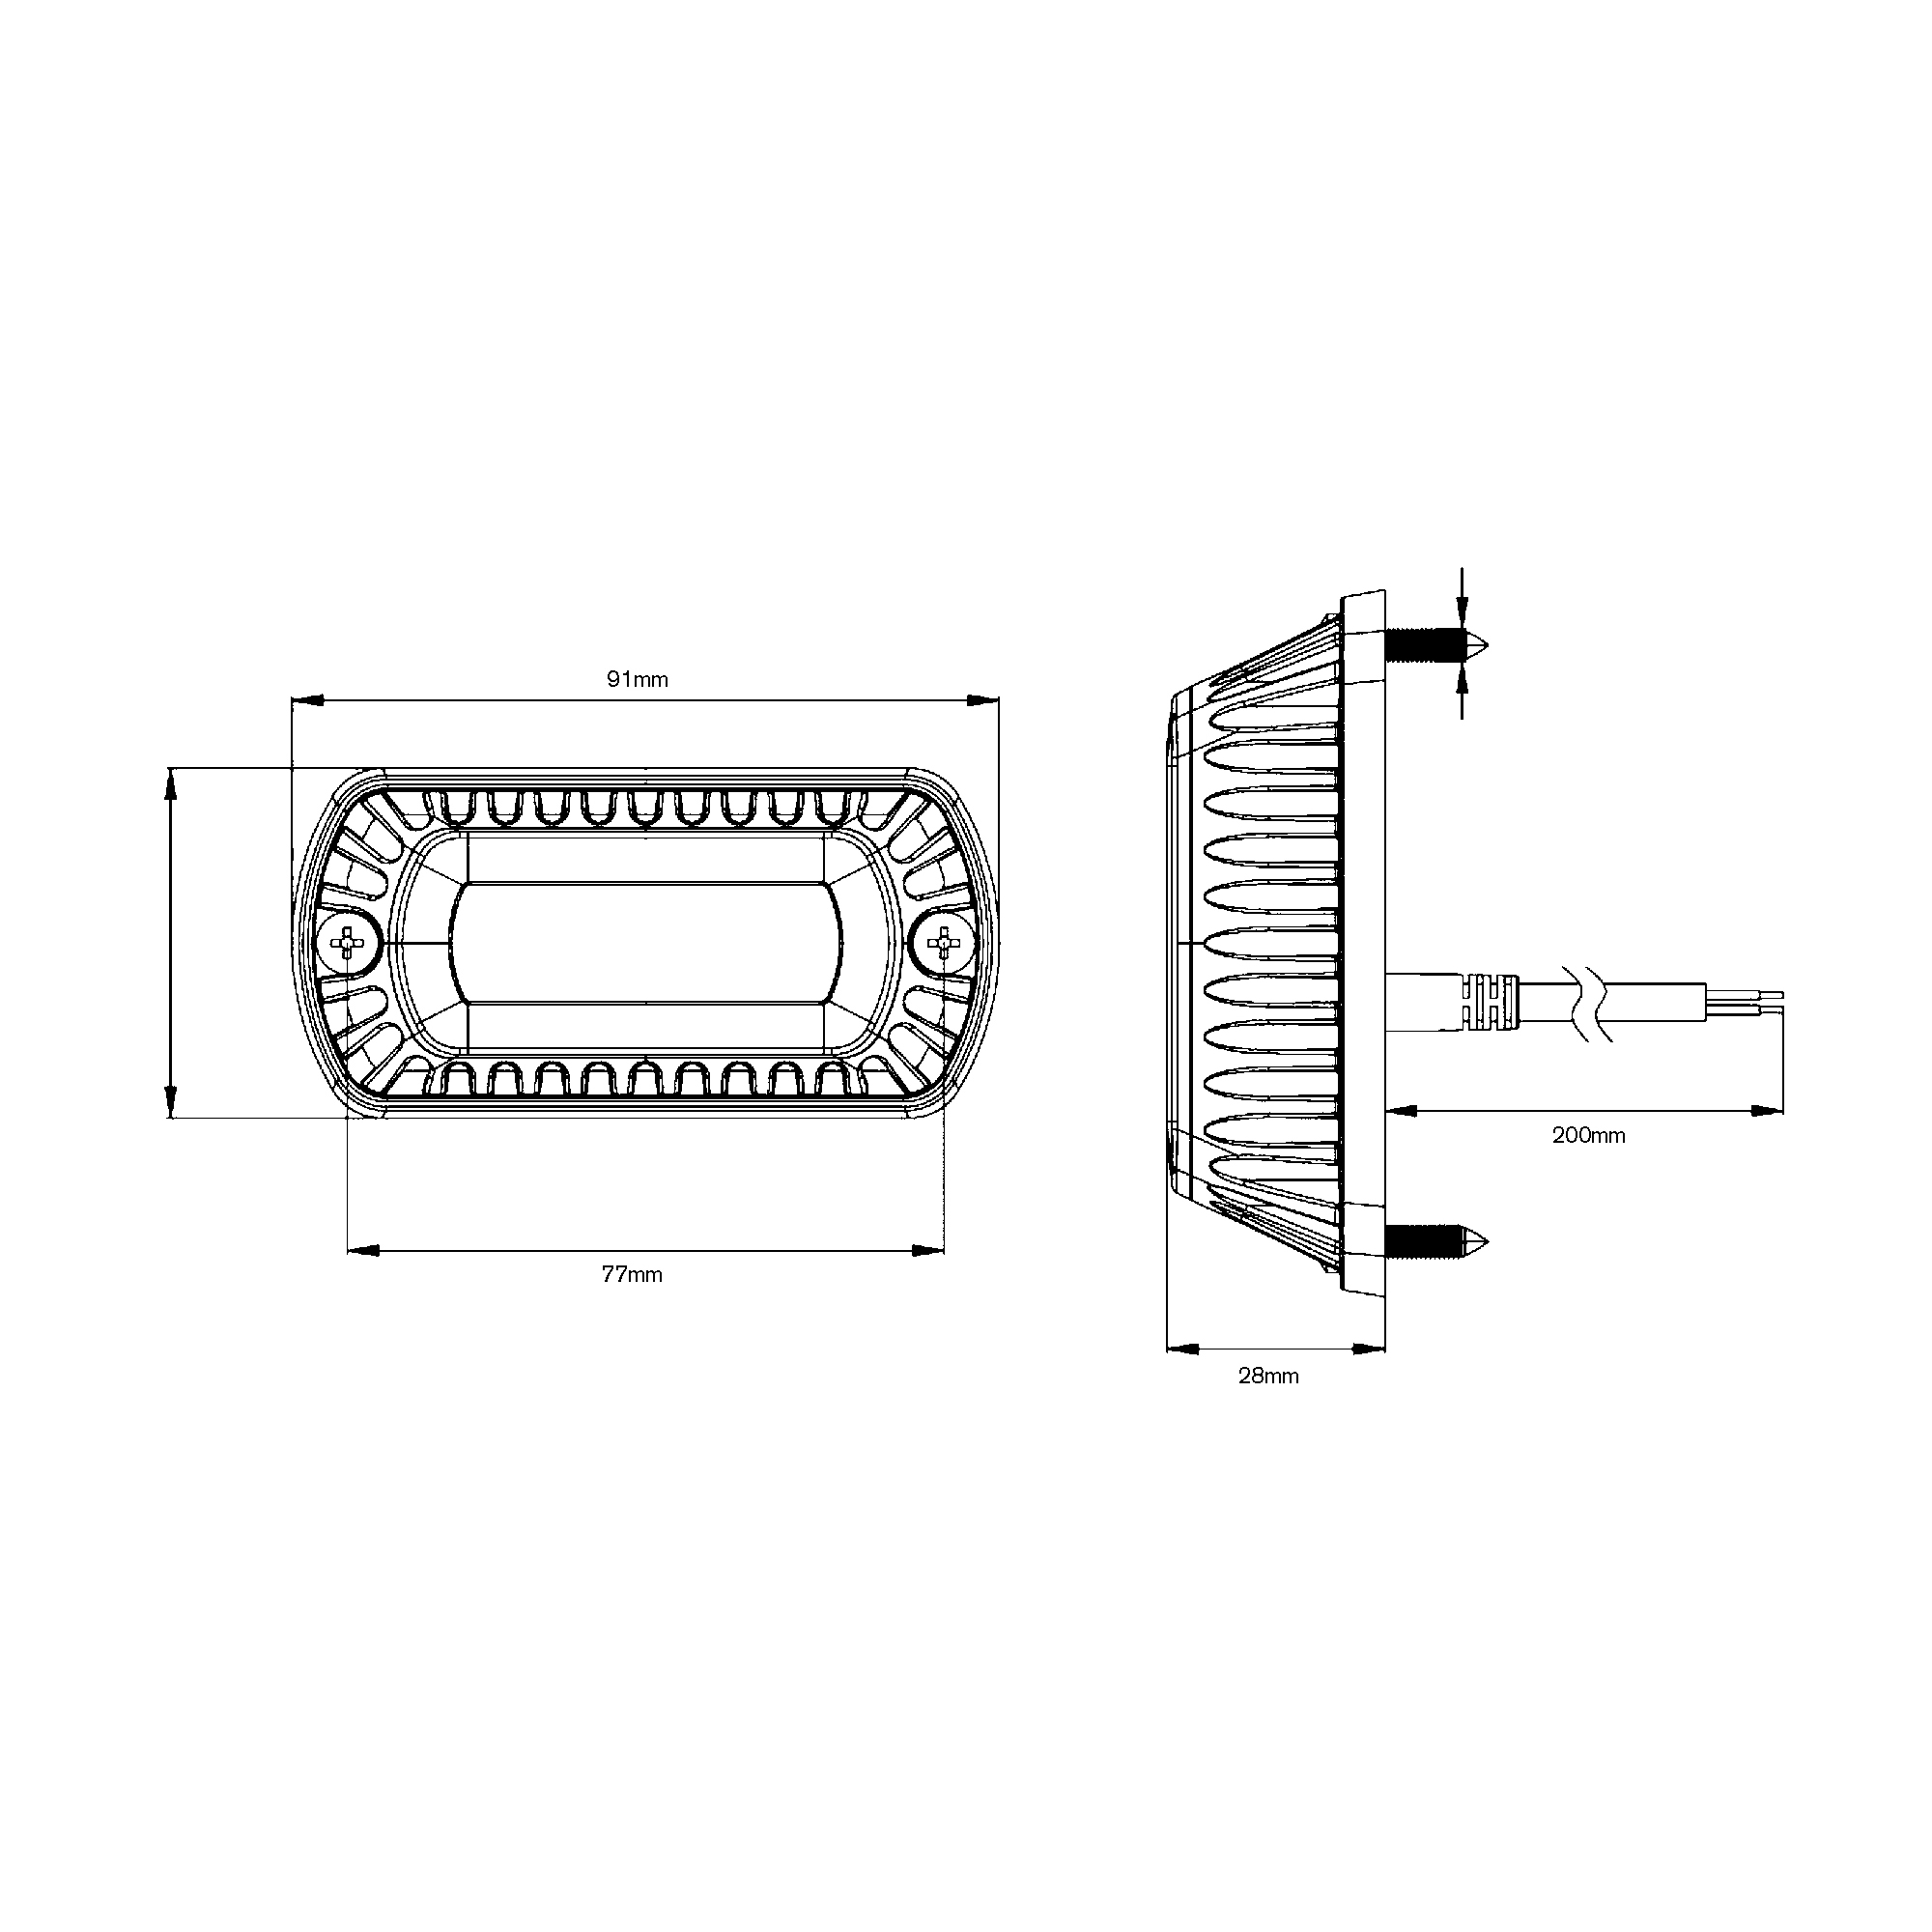 RCV2212 LED Amber Strobe Light tech diagram